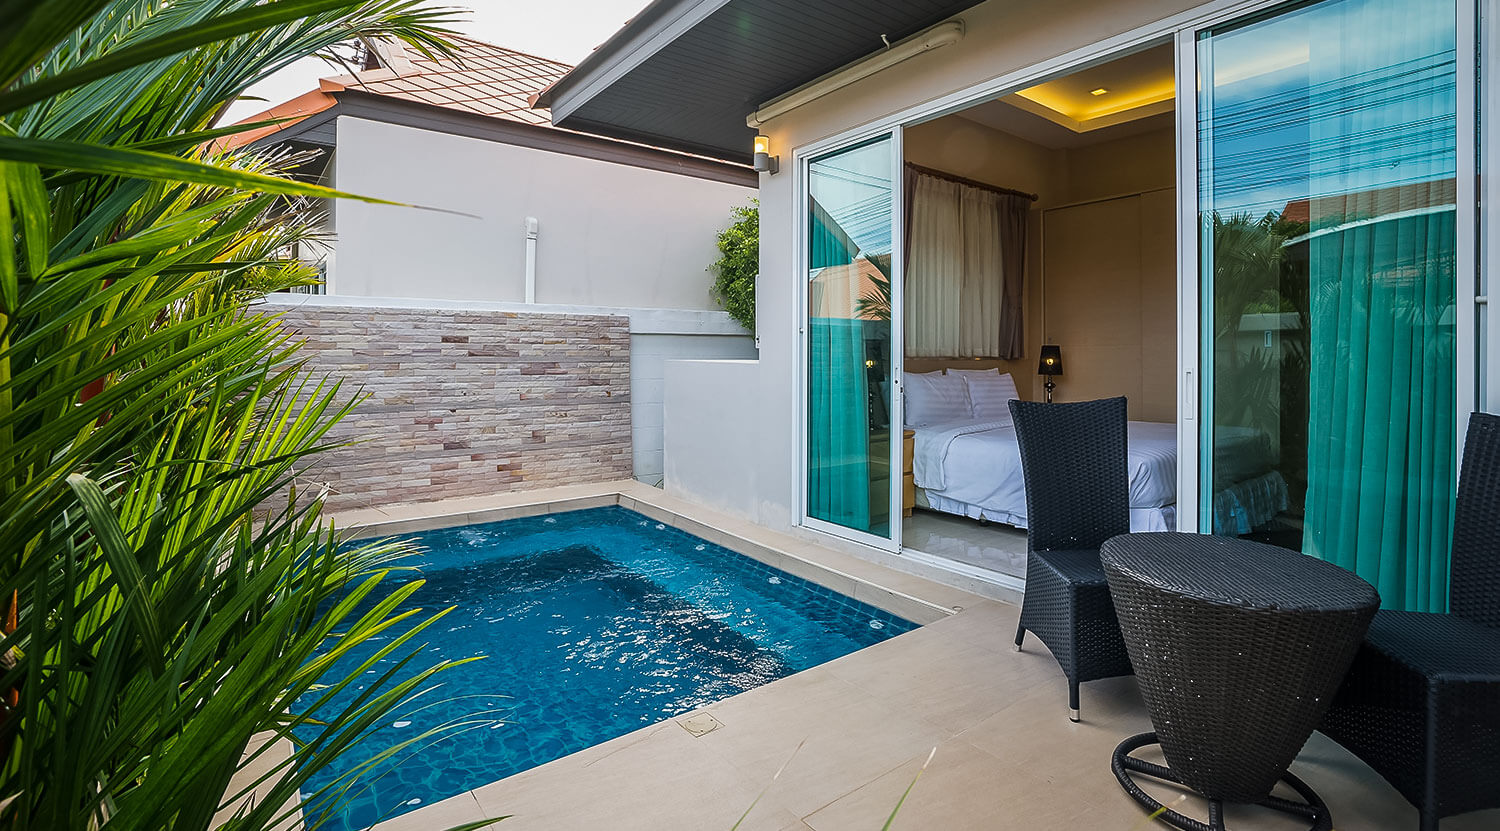 plunge pool 2 bedroom villa KWGLAEV